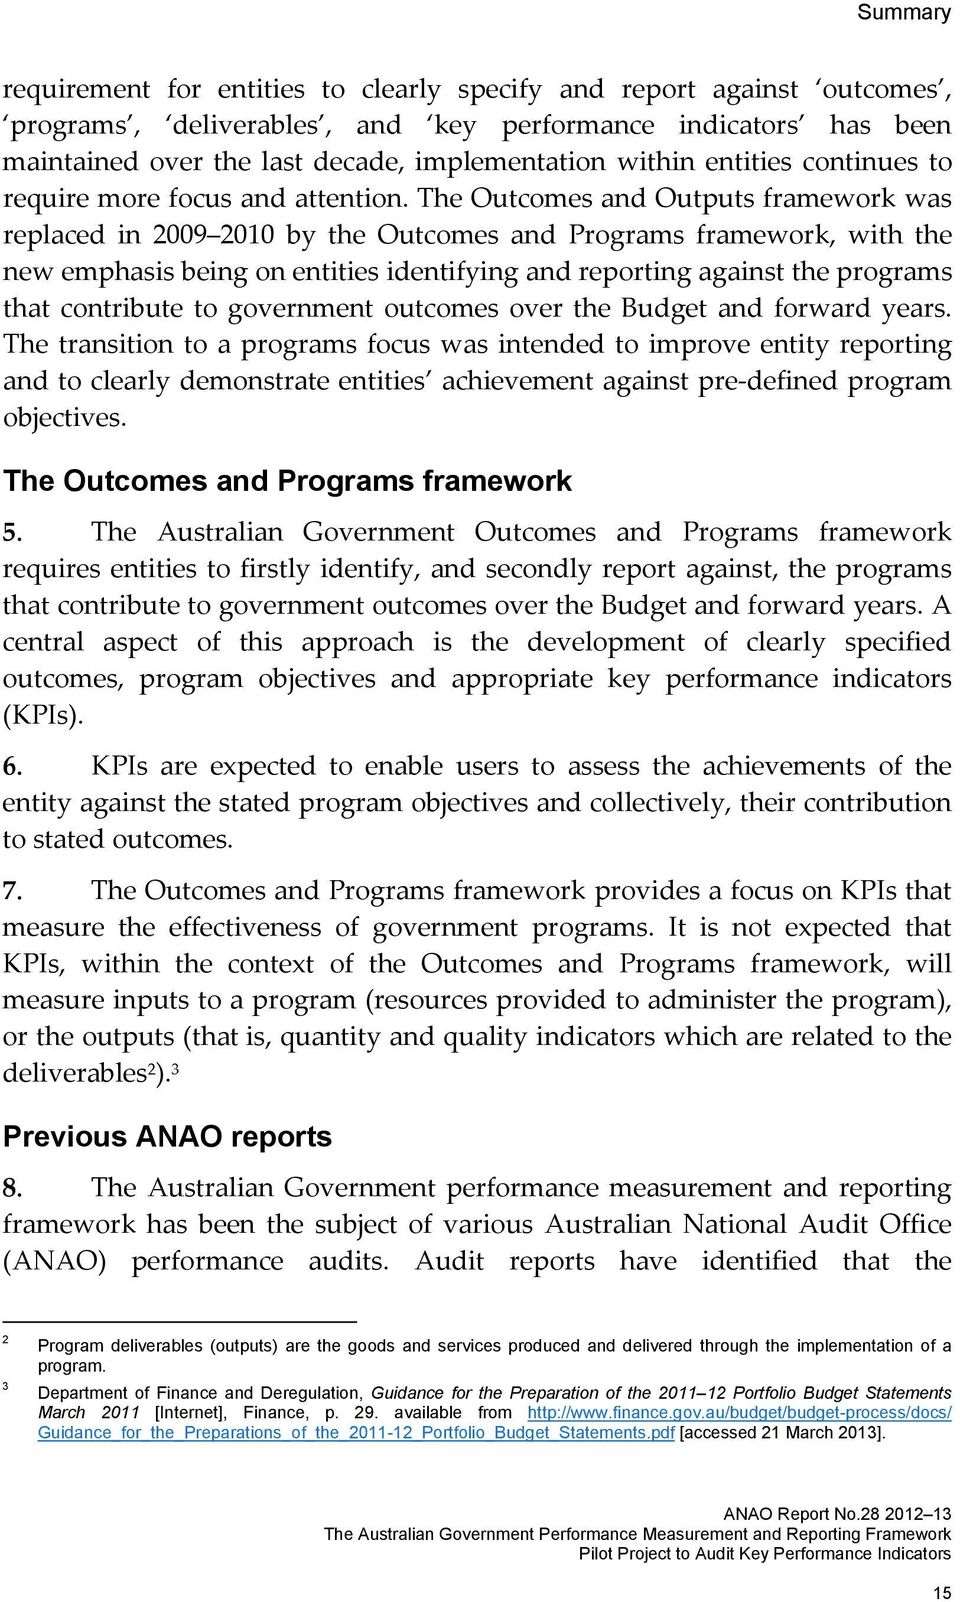 The Outcomes and Outputs framework was replaced in 2009 2010 by the Outcomes and Programs framework, with the new emphasis being on entities identifying and reporting against the programs that